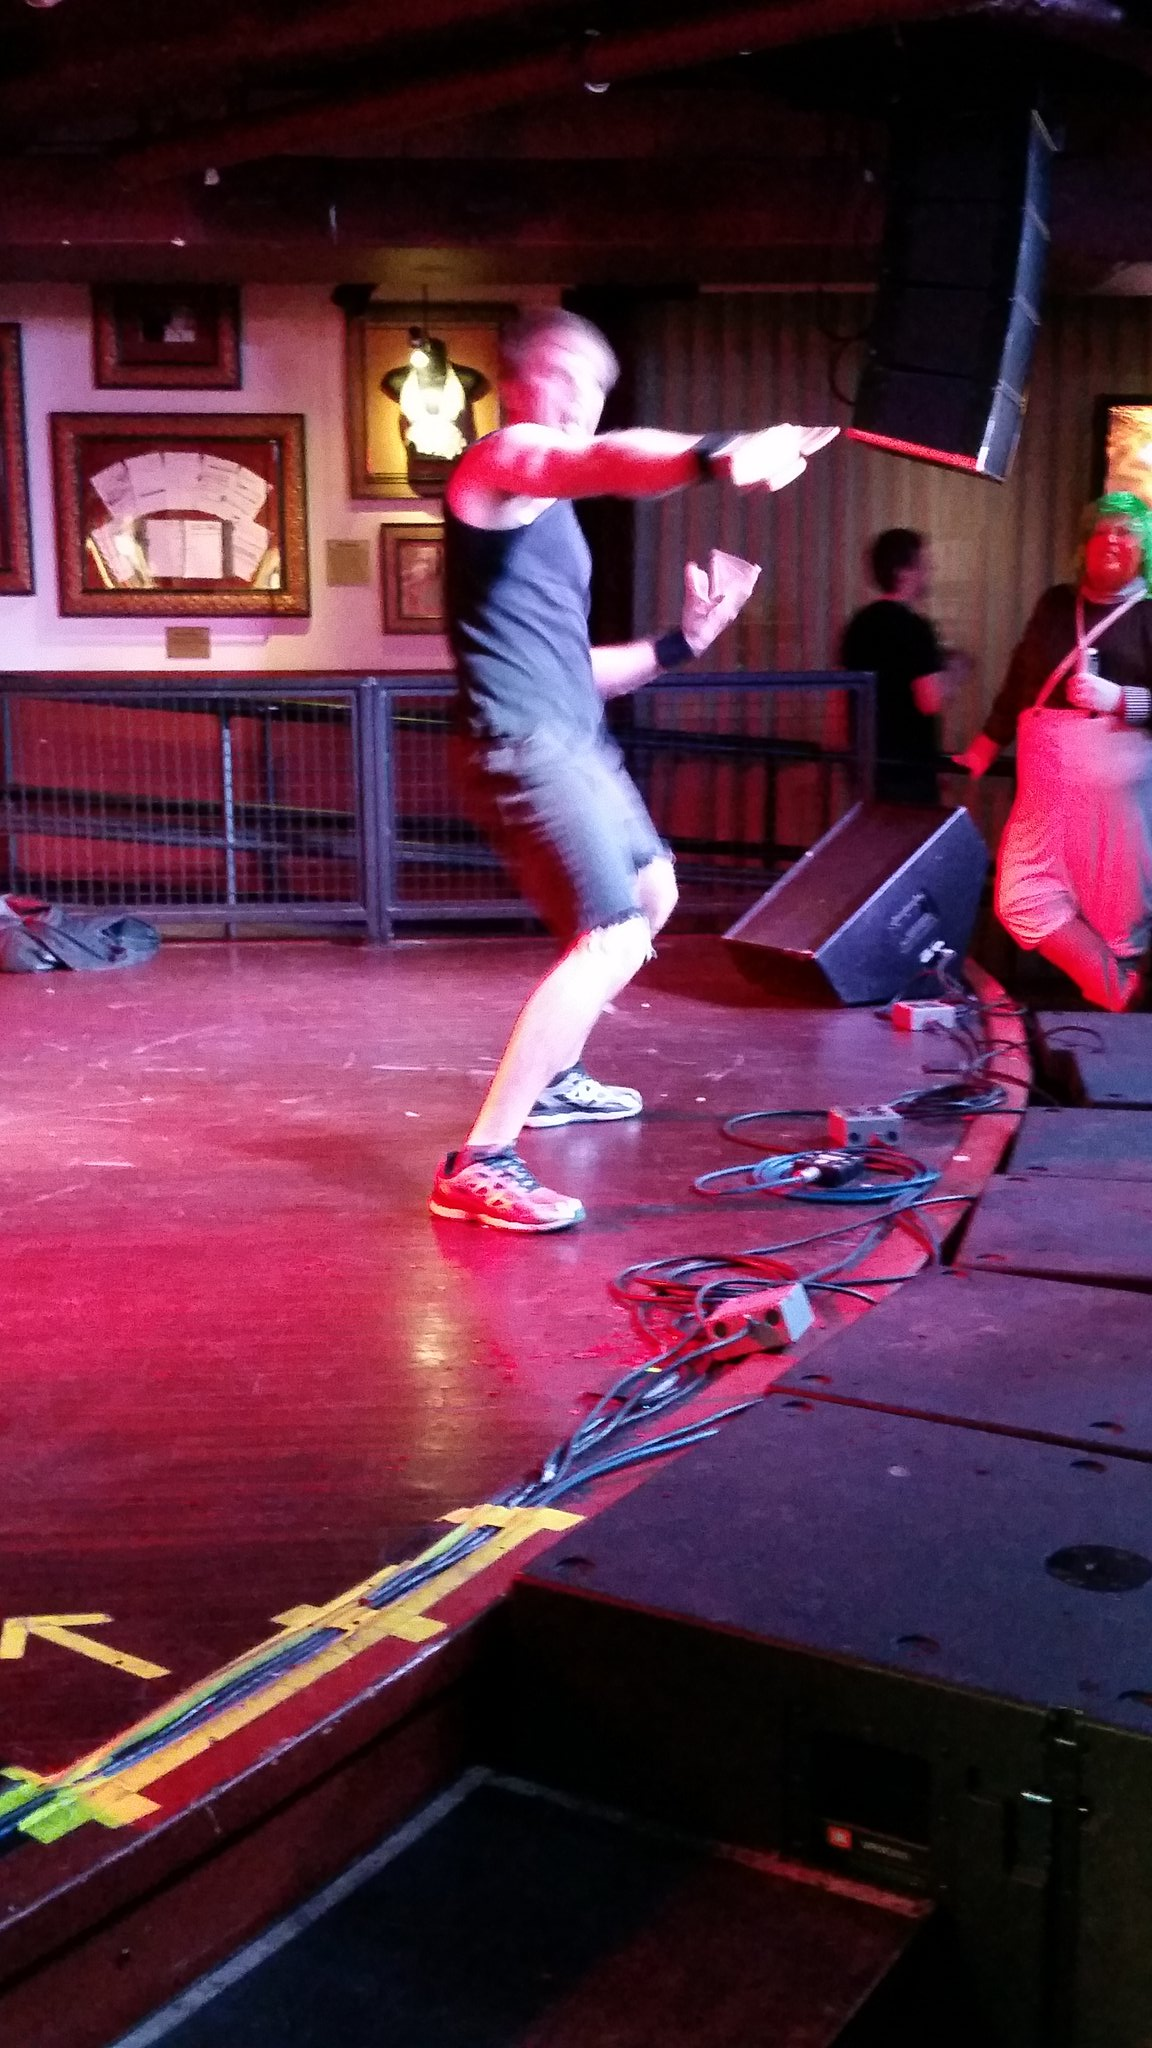 This year DTT is Breeze Wrench. A judge called him a Looney Tune and he got TWO 6.0s. #usairguitar https://t.co/rZIlpjv9Ep